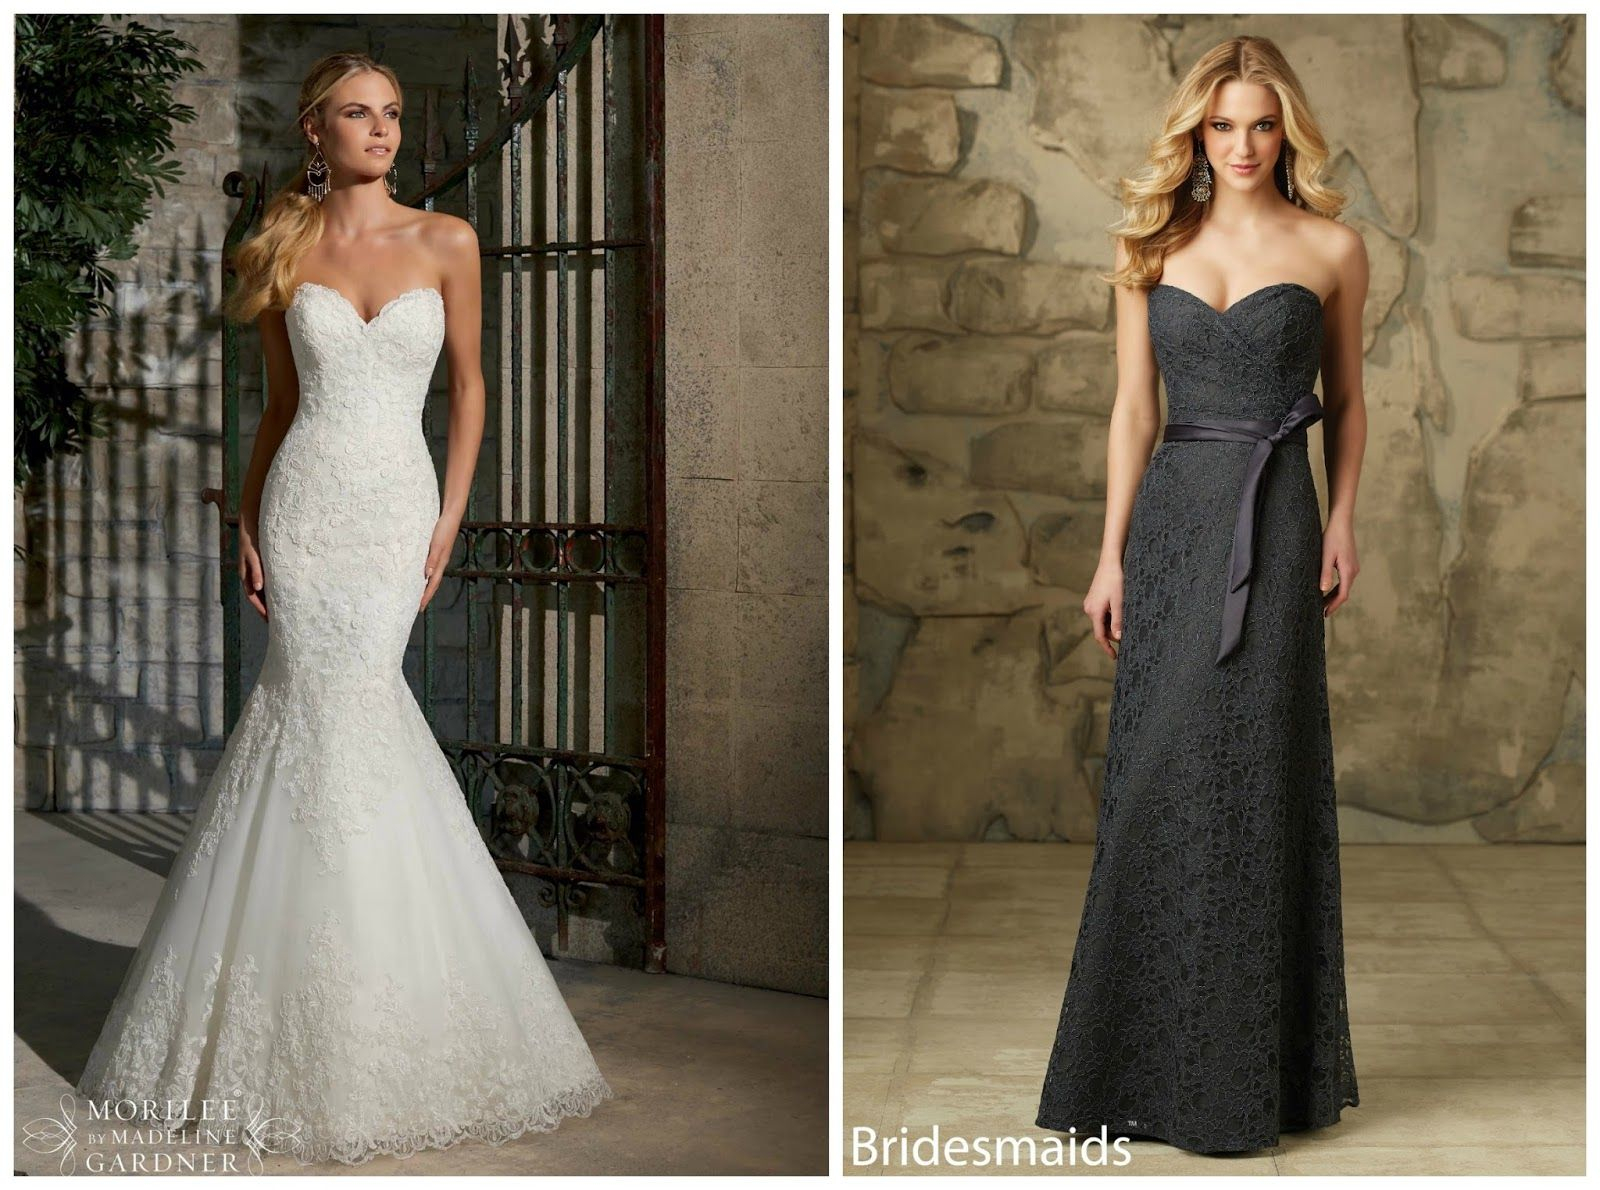 100+ Wedding Dresses In Miami Fl - Dresses for Guest at Wedding ...